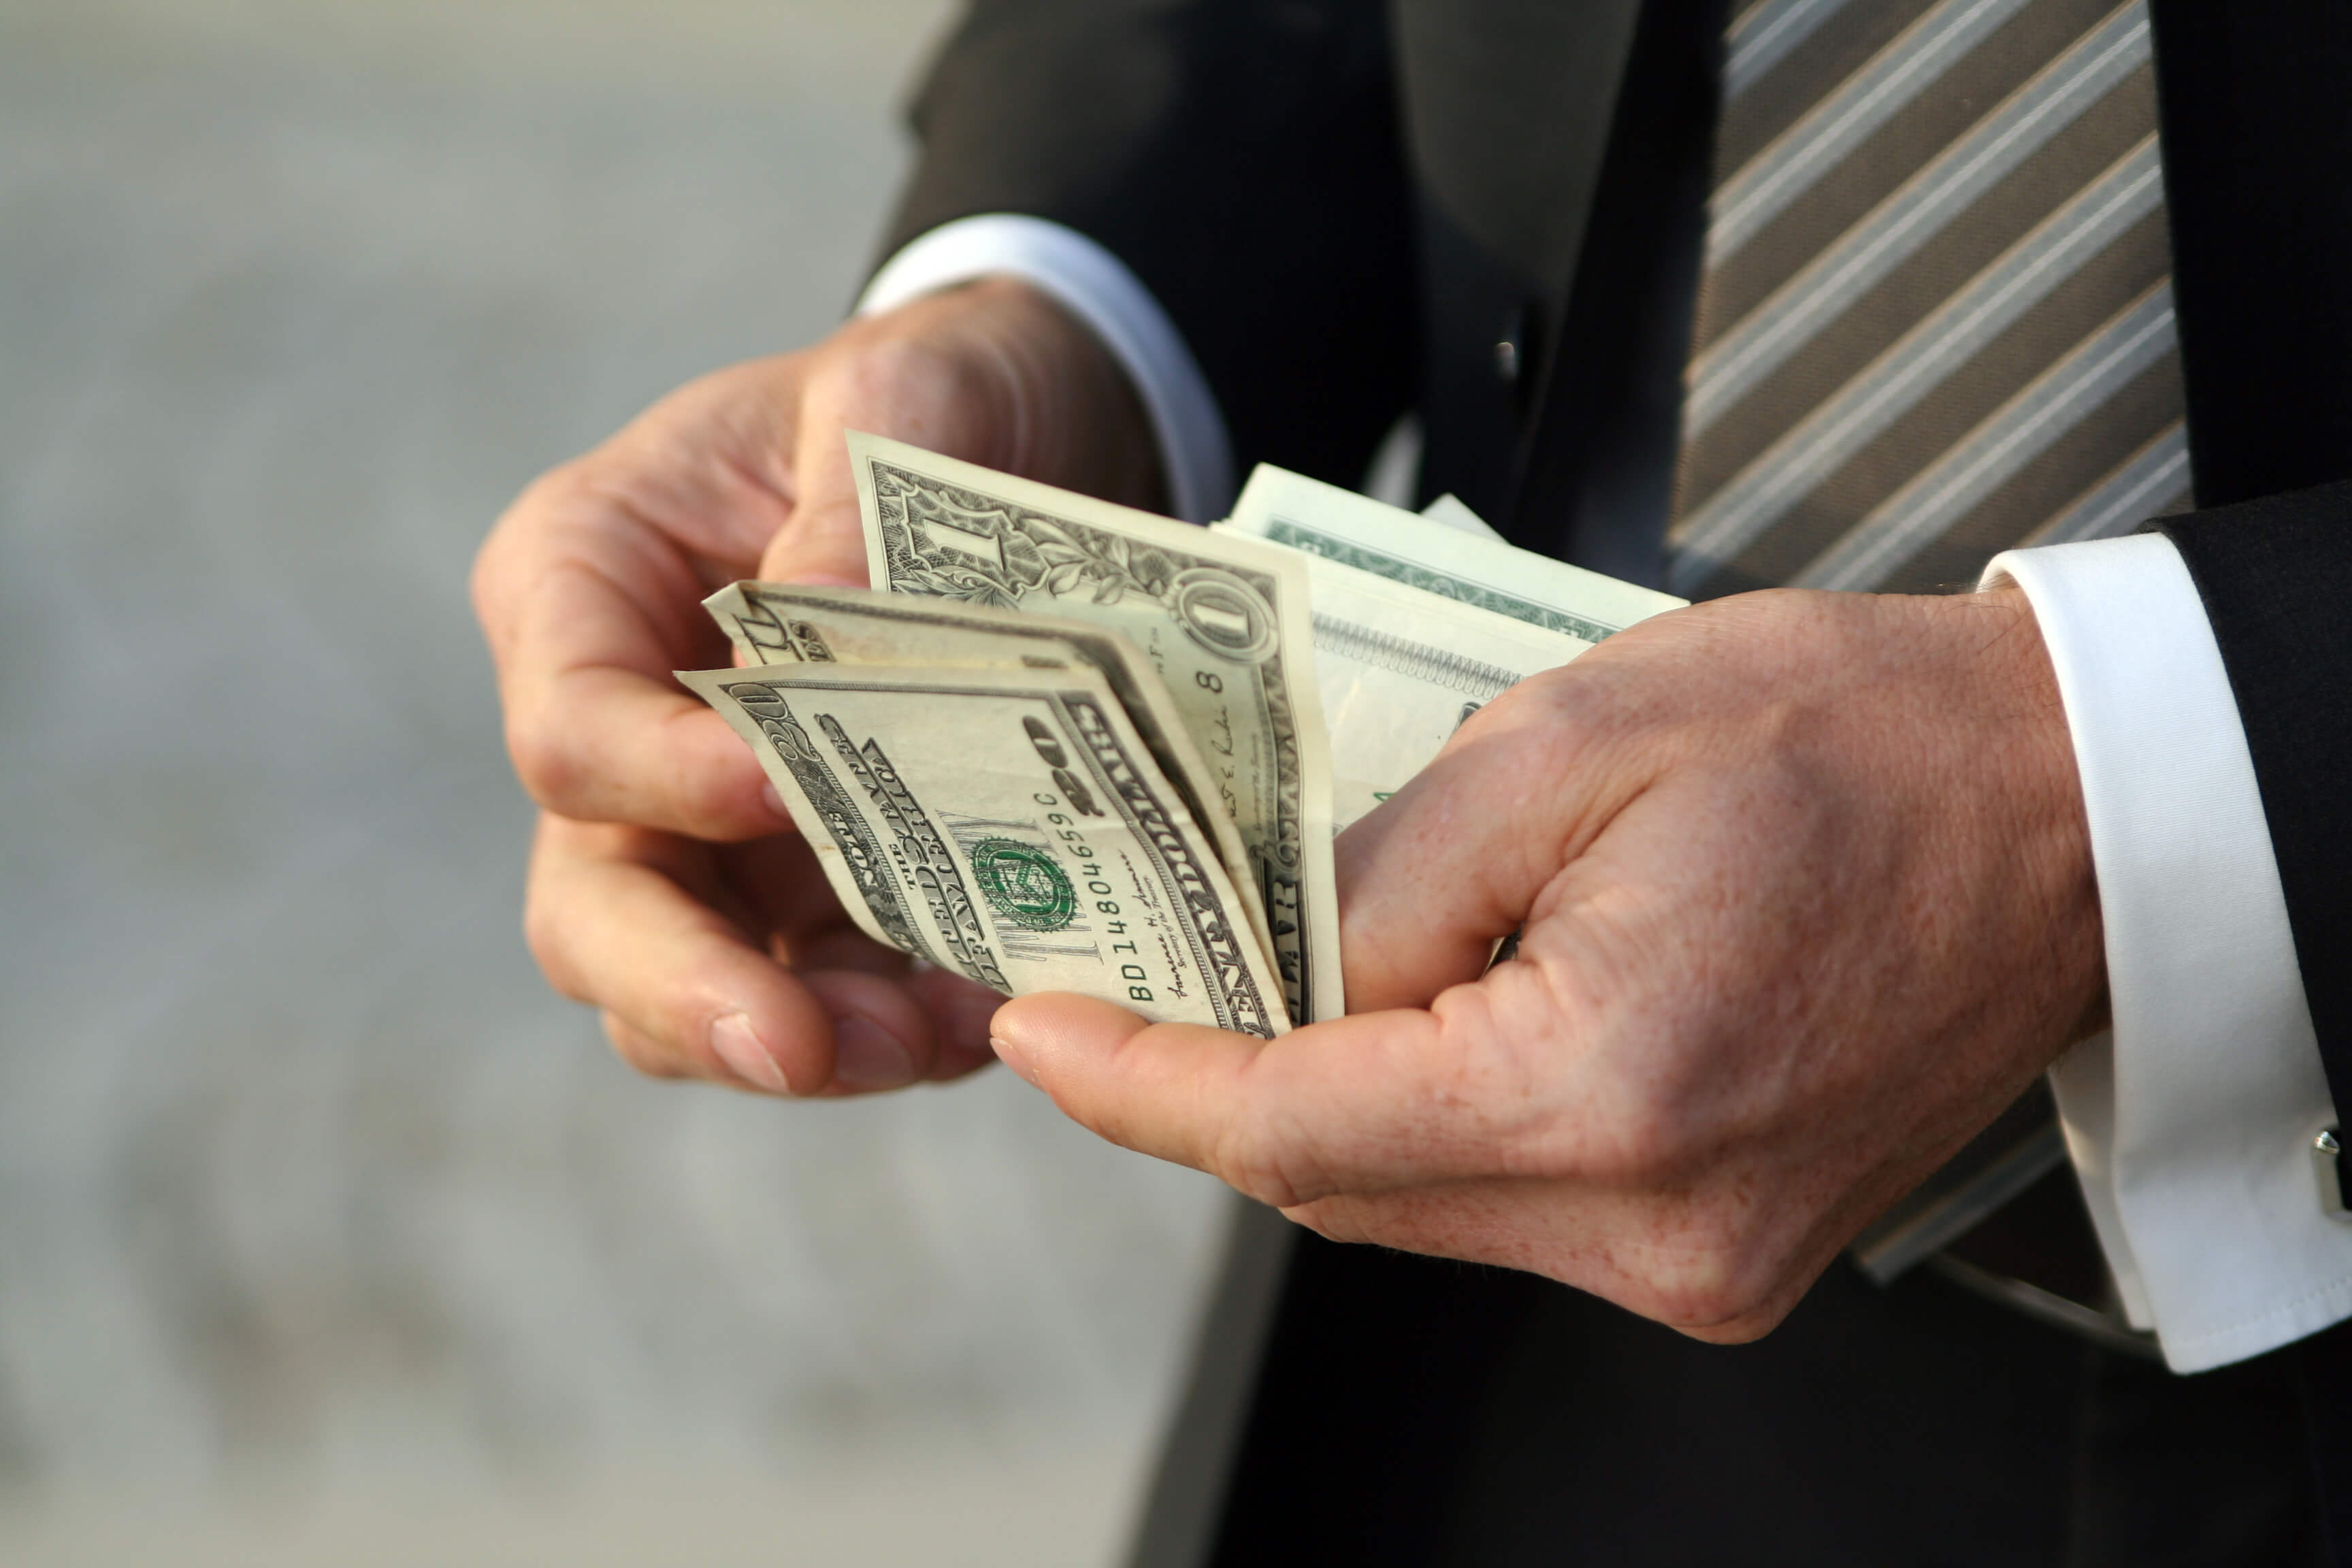 This is a photo of a man in a suit counting his cash, which represents people avoiding overpaying for title loans